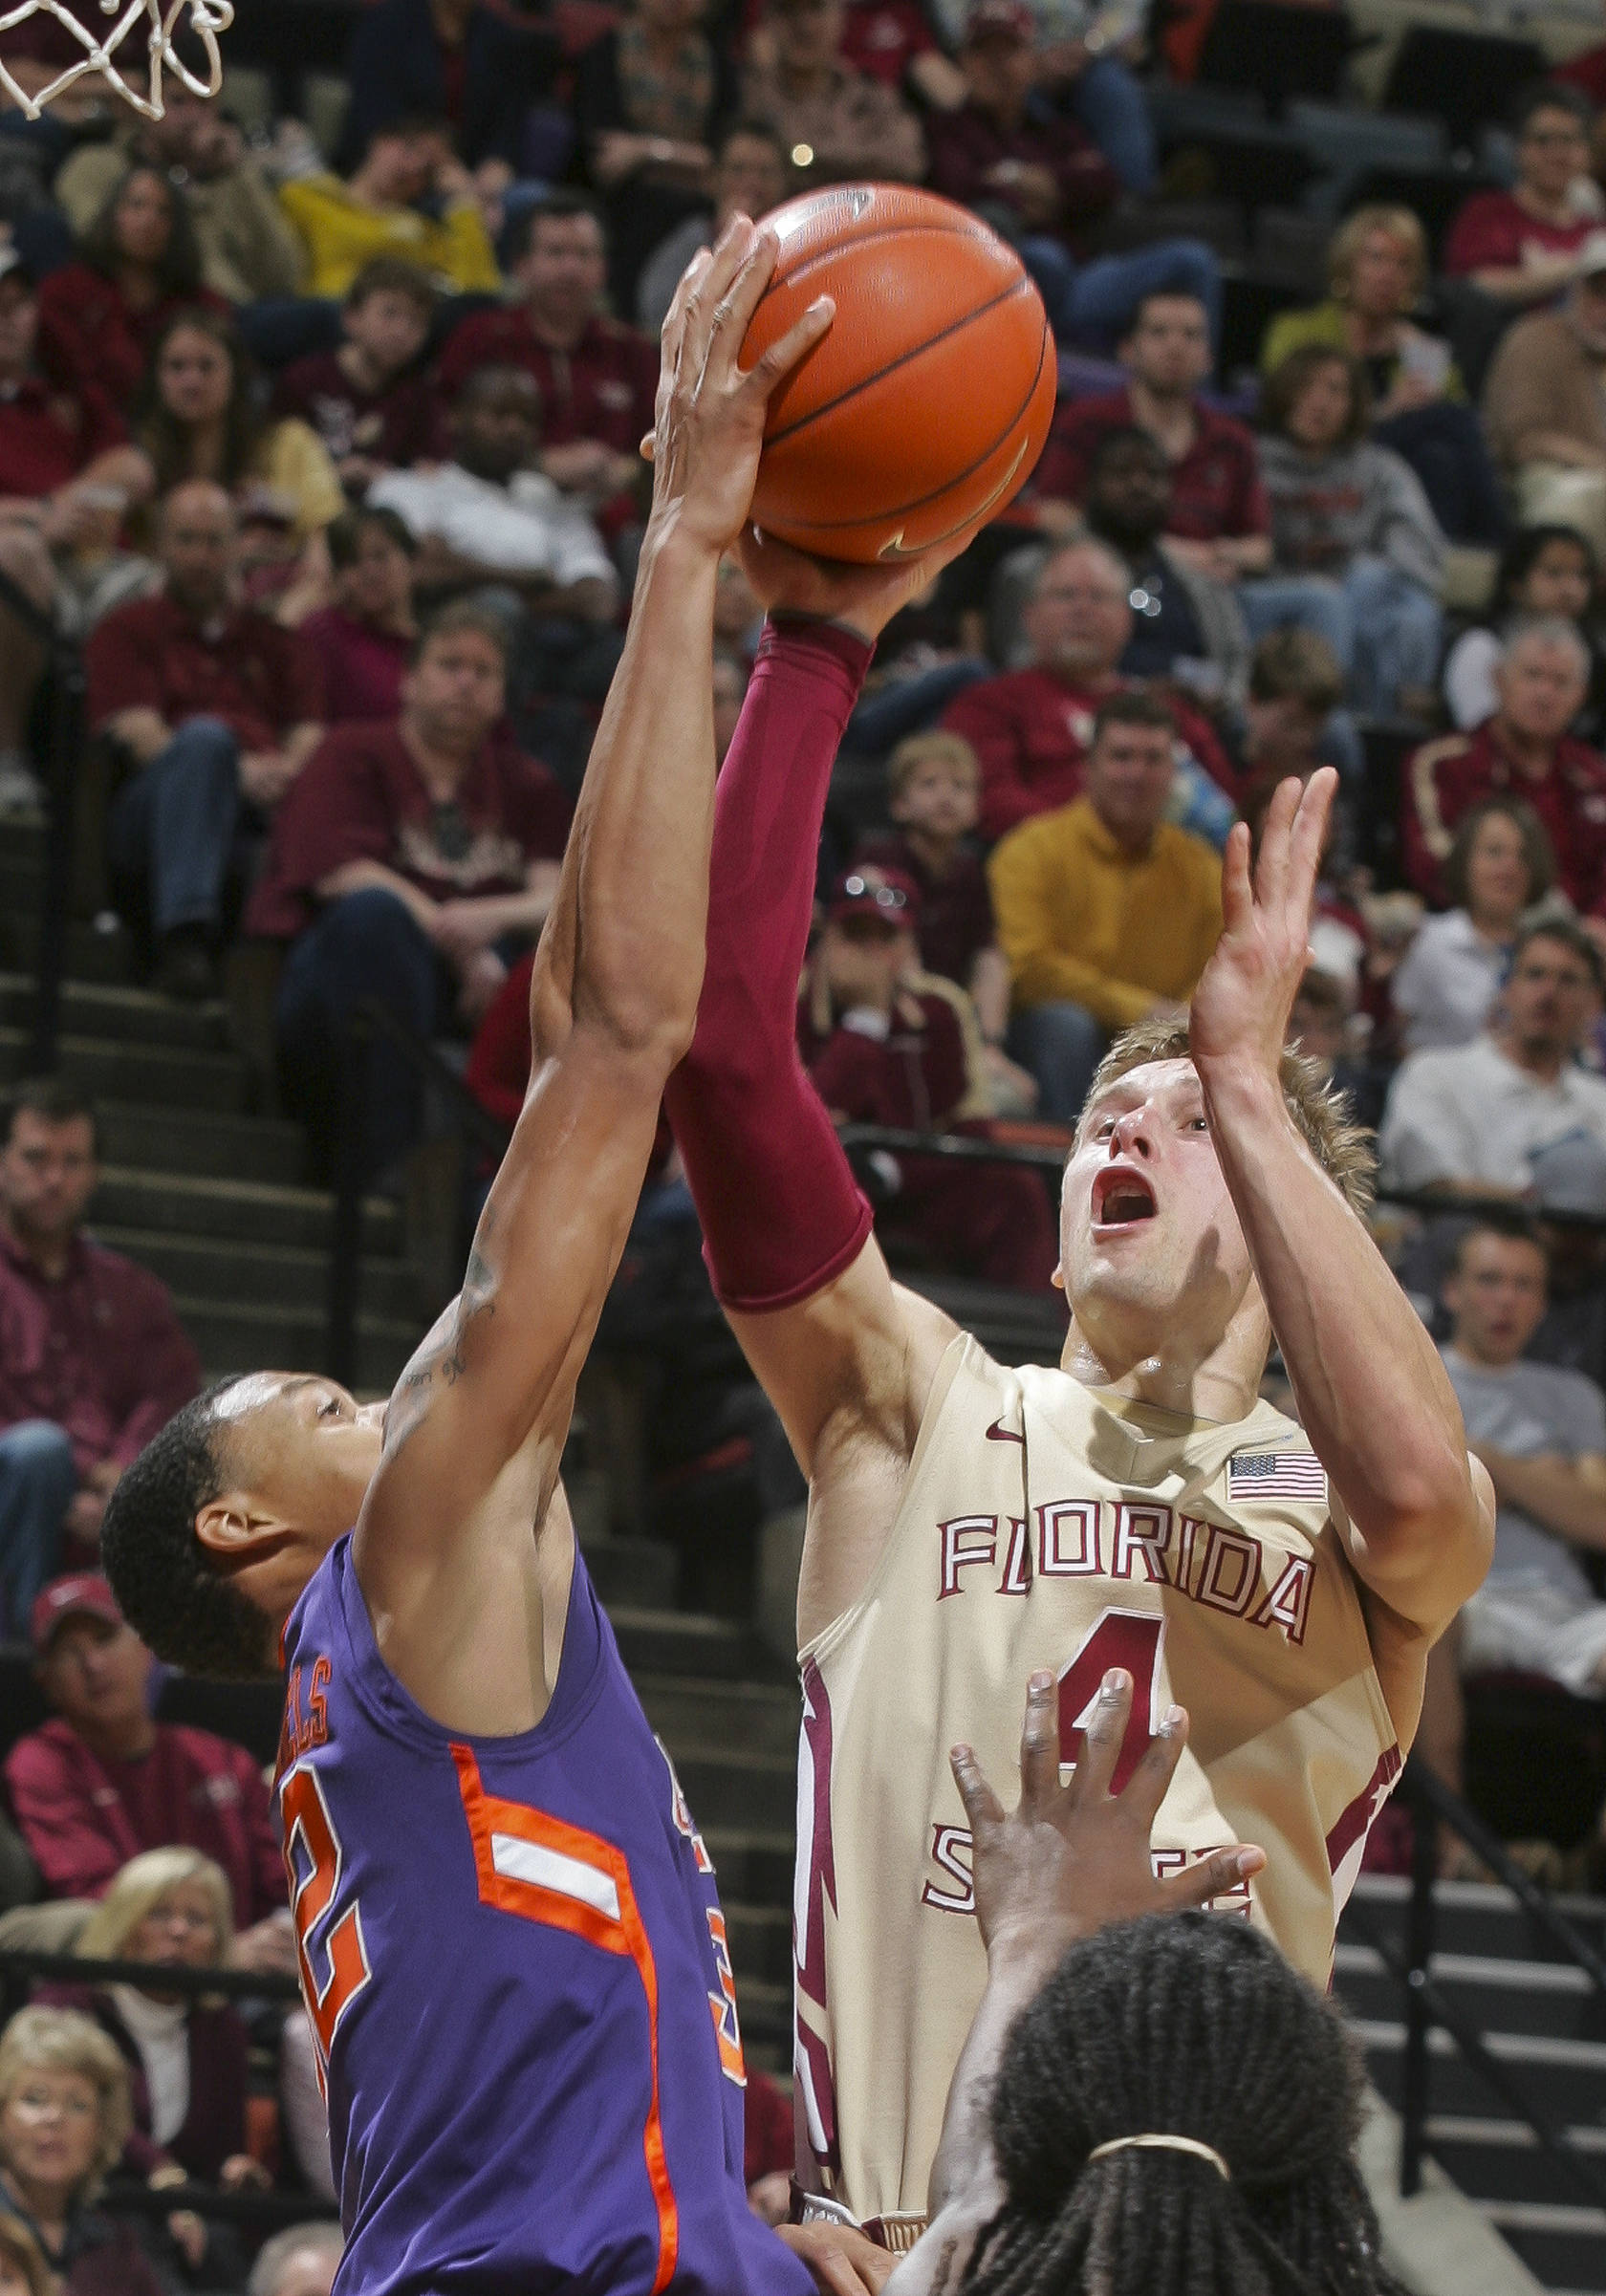 Florida State's Deividas Dulkys (4) goes up for a shot against Clemson guard K.J. McDaniels (32) in the second half. (AP Photo/Phil Sears)